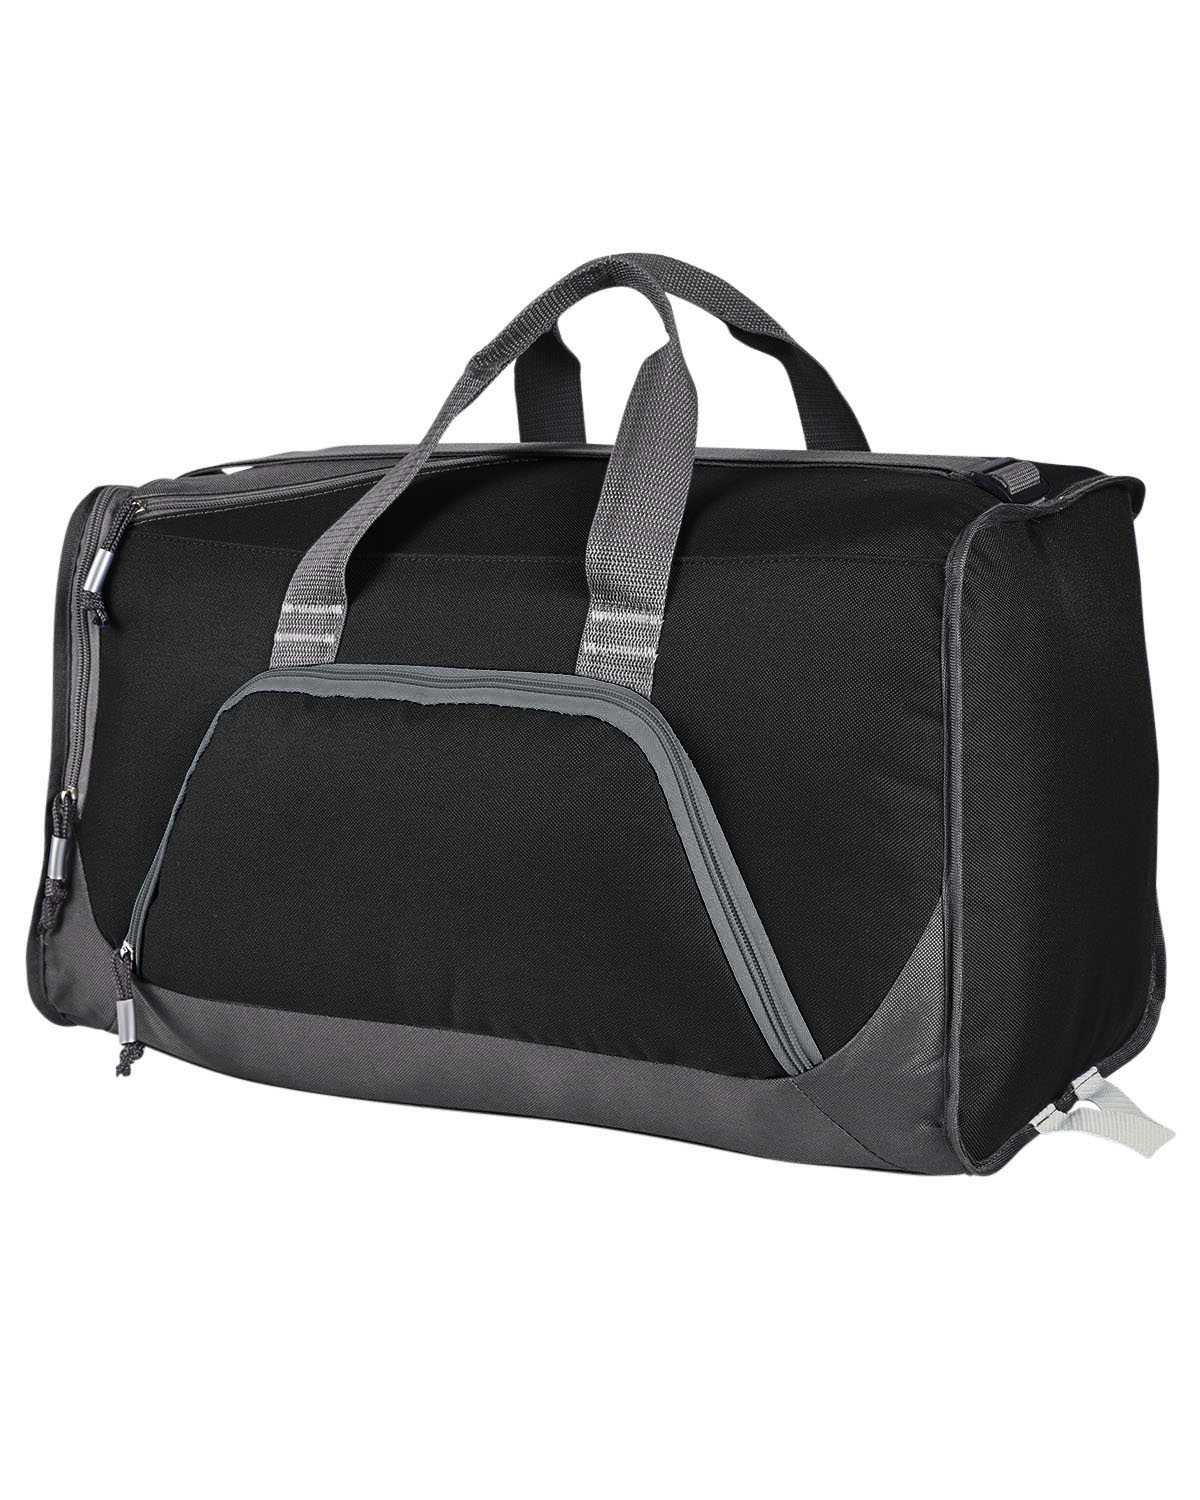 Rangeley Sport Bag